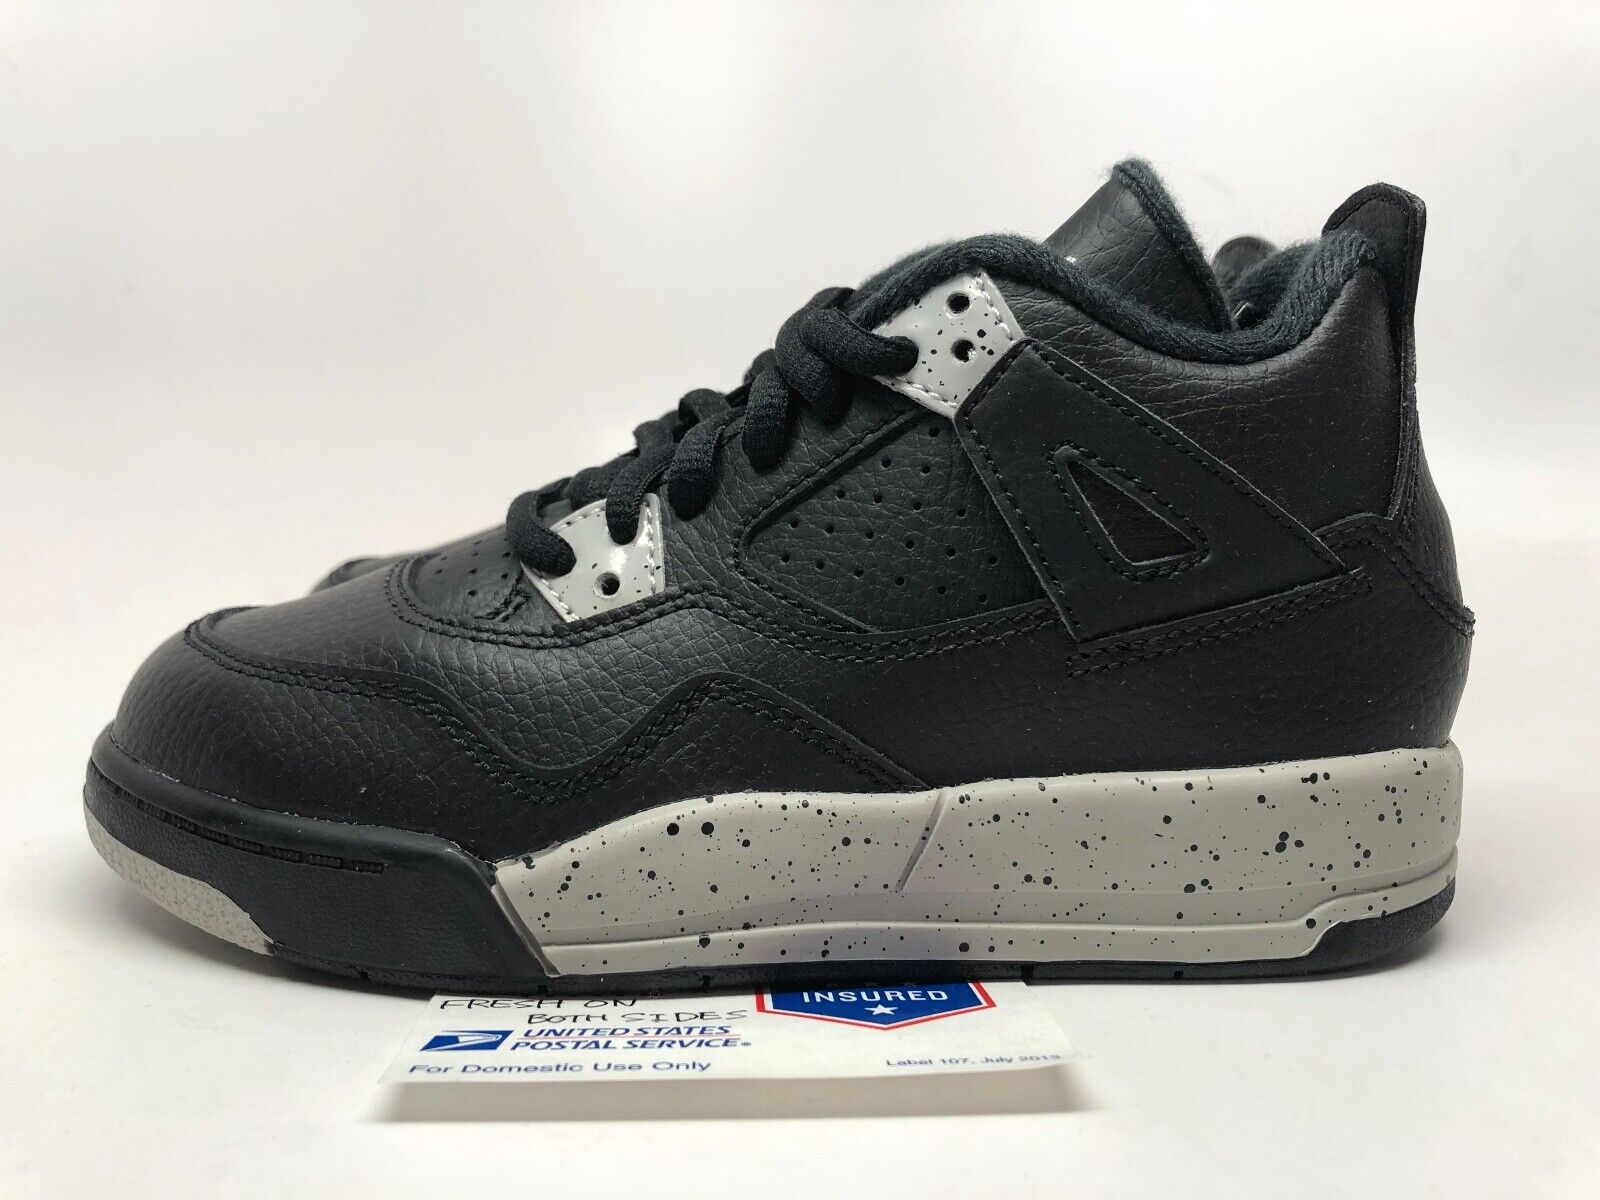 Air Jordan 4 Retro PS 'Oreo' TD sz 12c, 13c New!